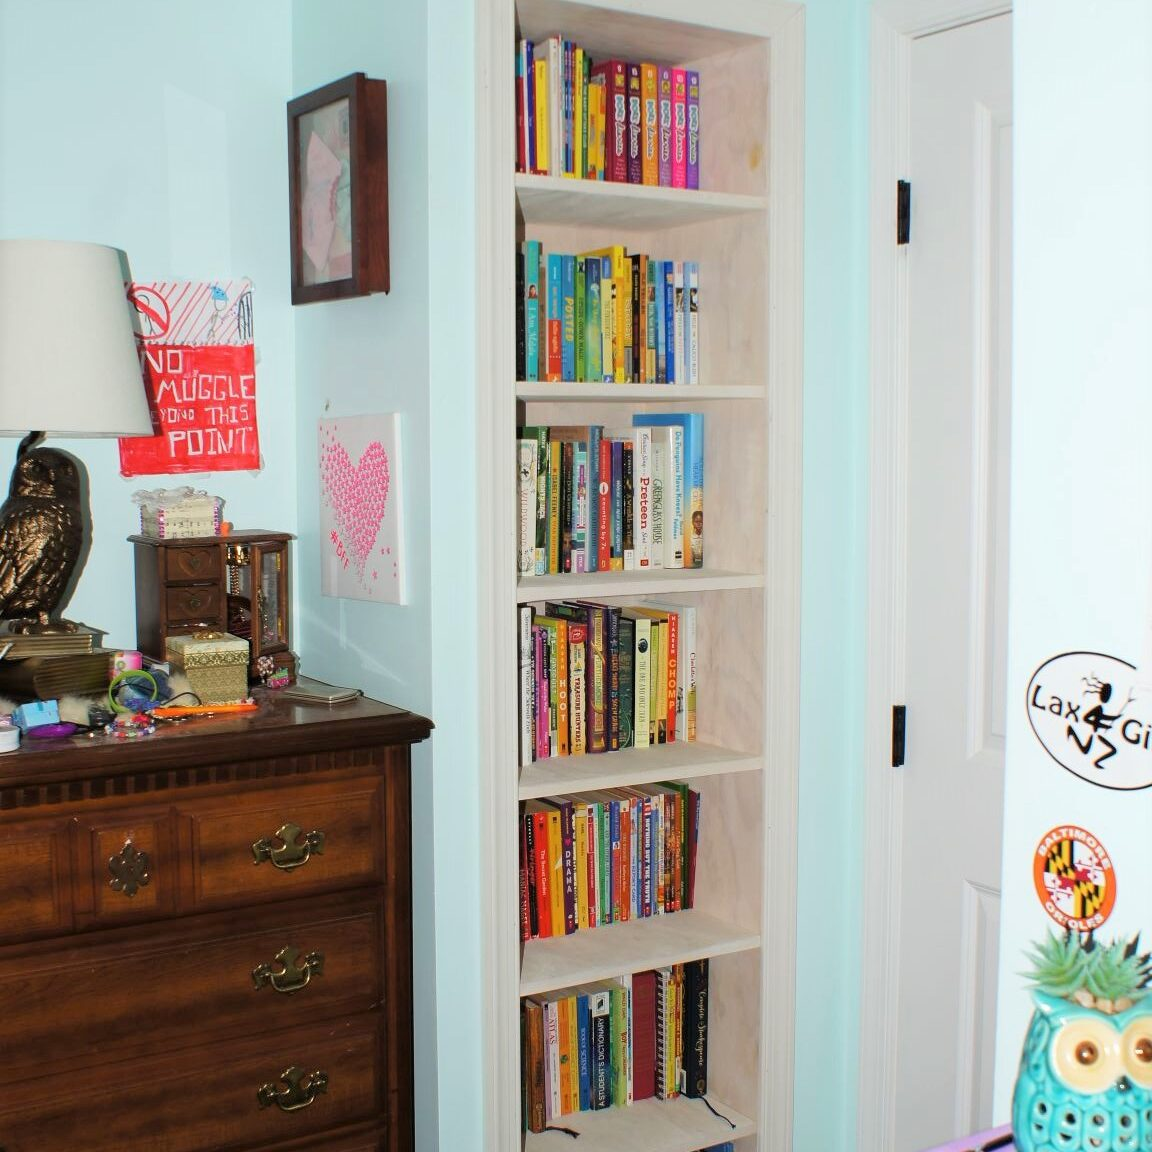 Inset-Bookcase-24-1